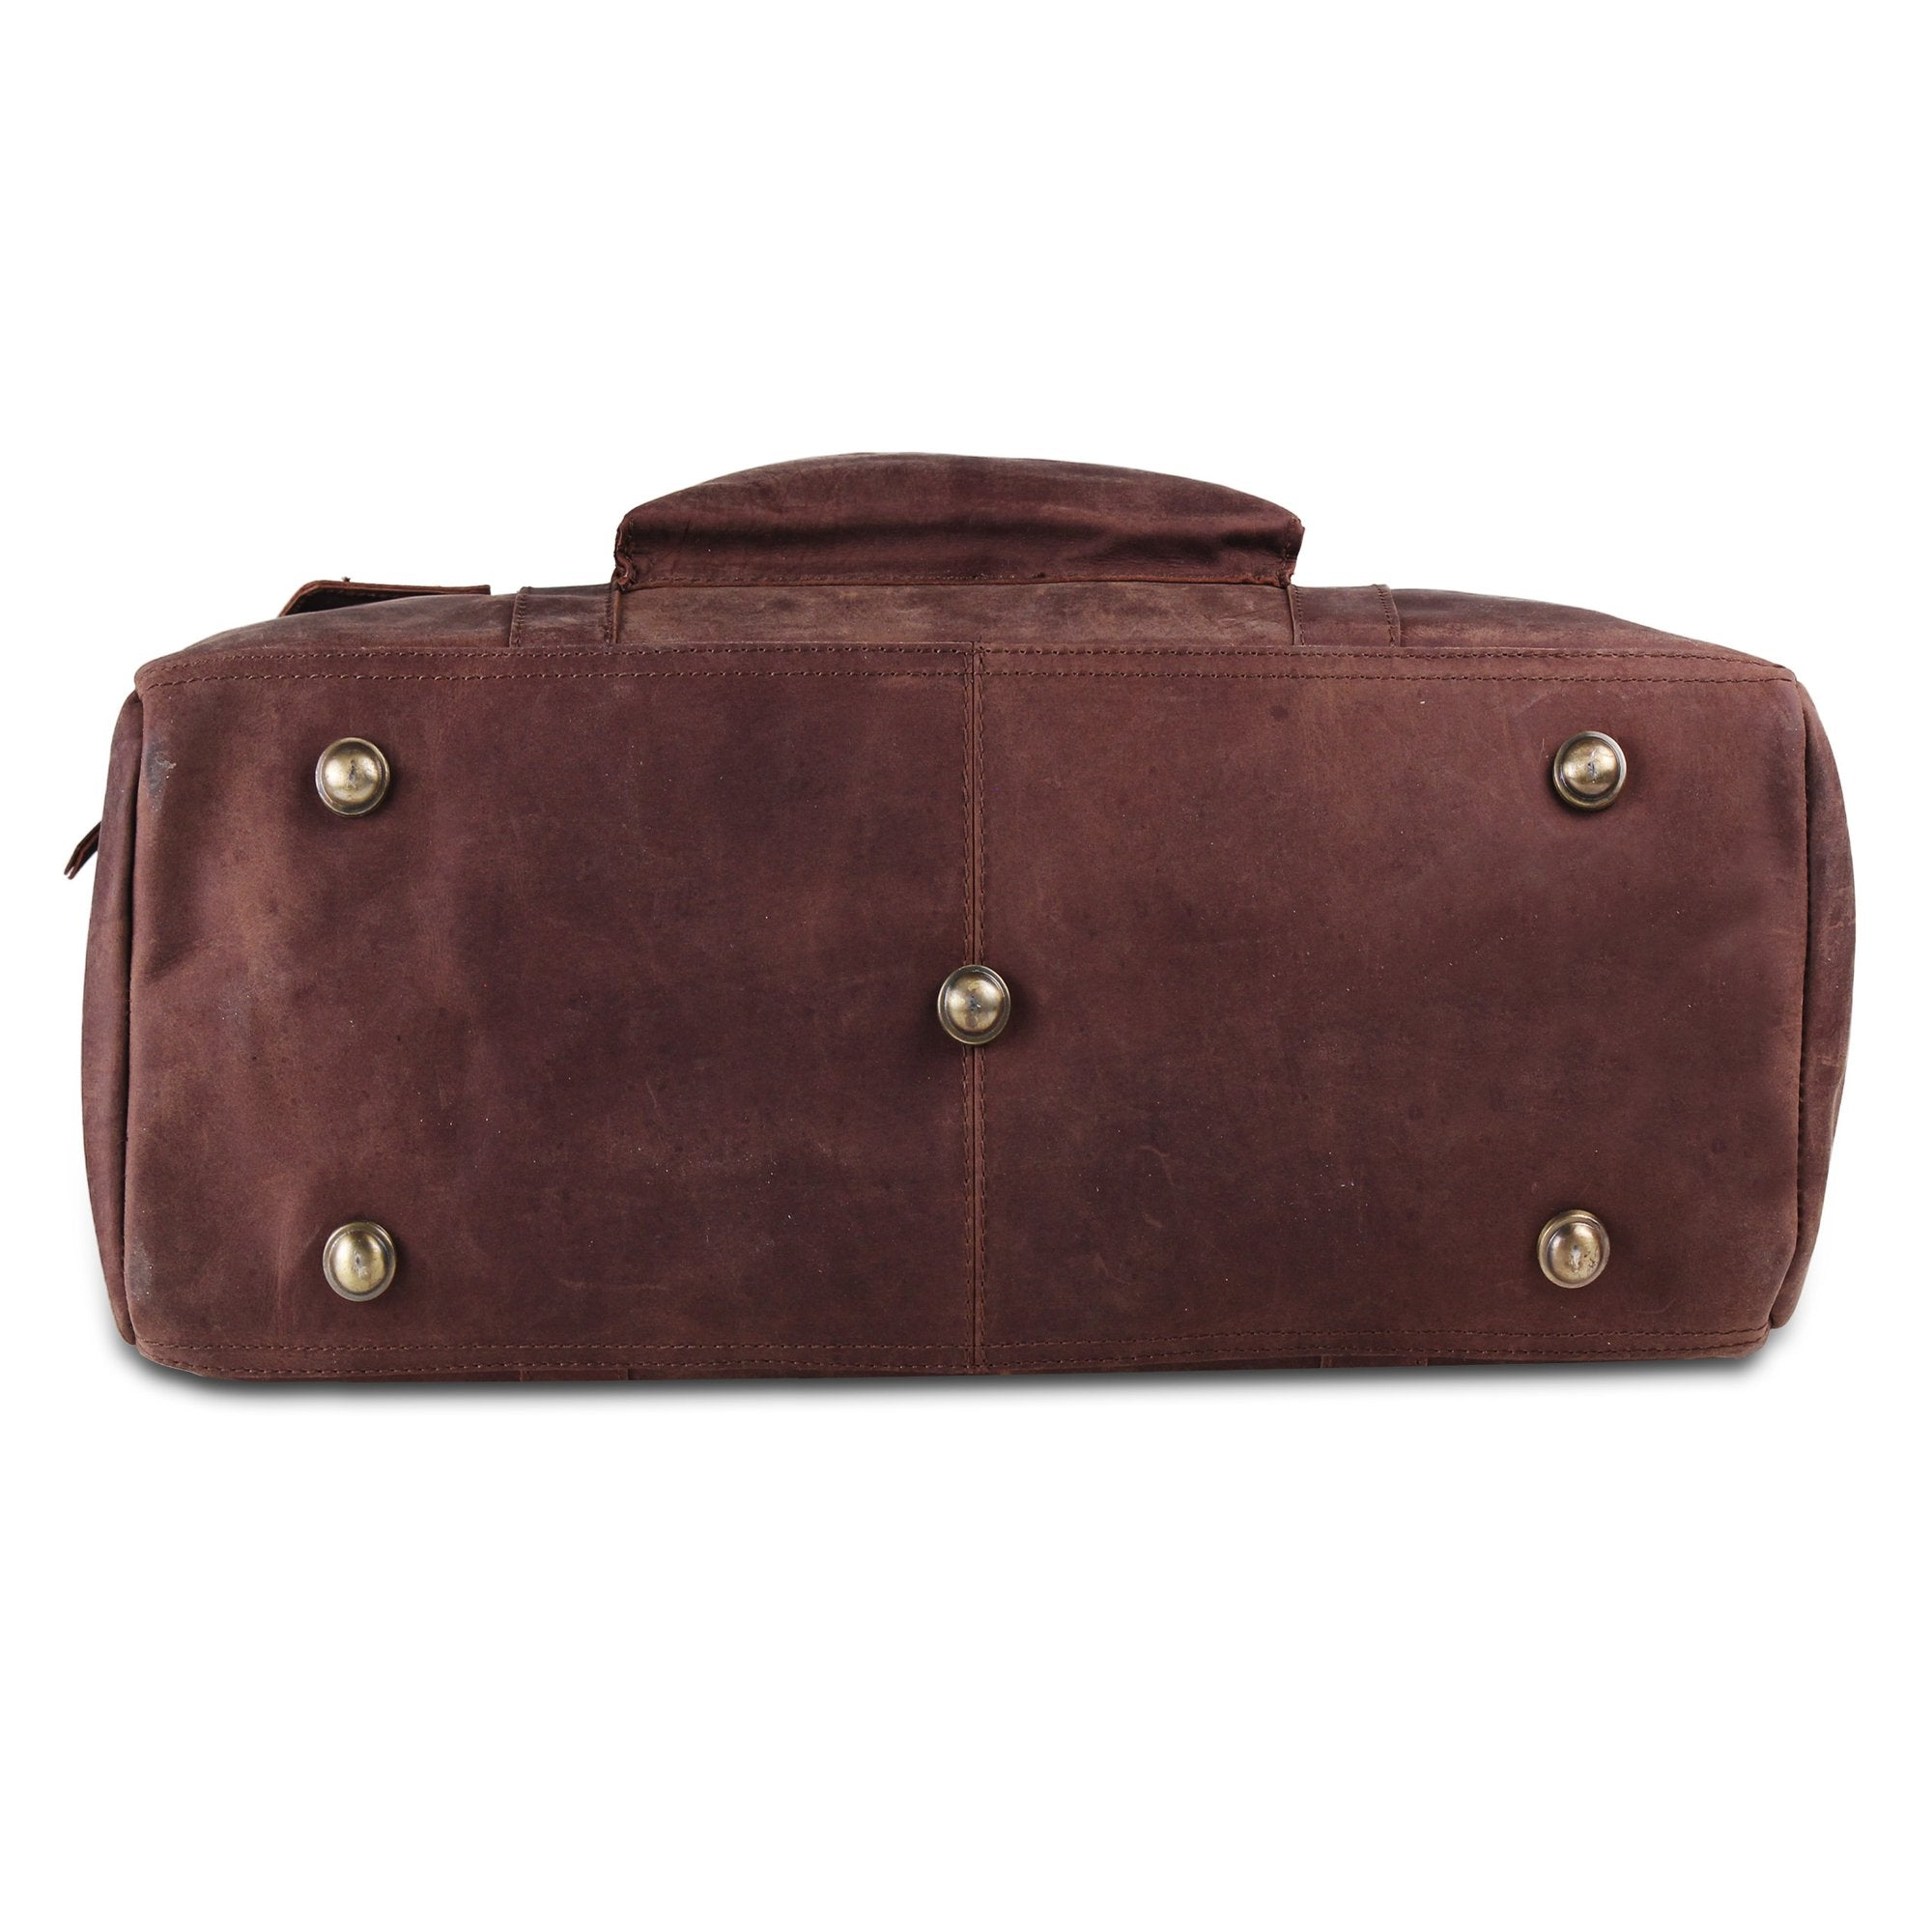 Full Grain Leather Duffle Bag with Large external Pocket and Top Handle for men's